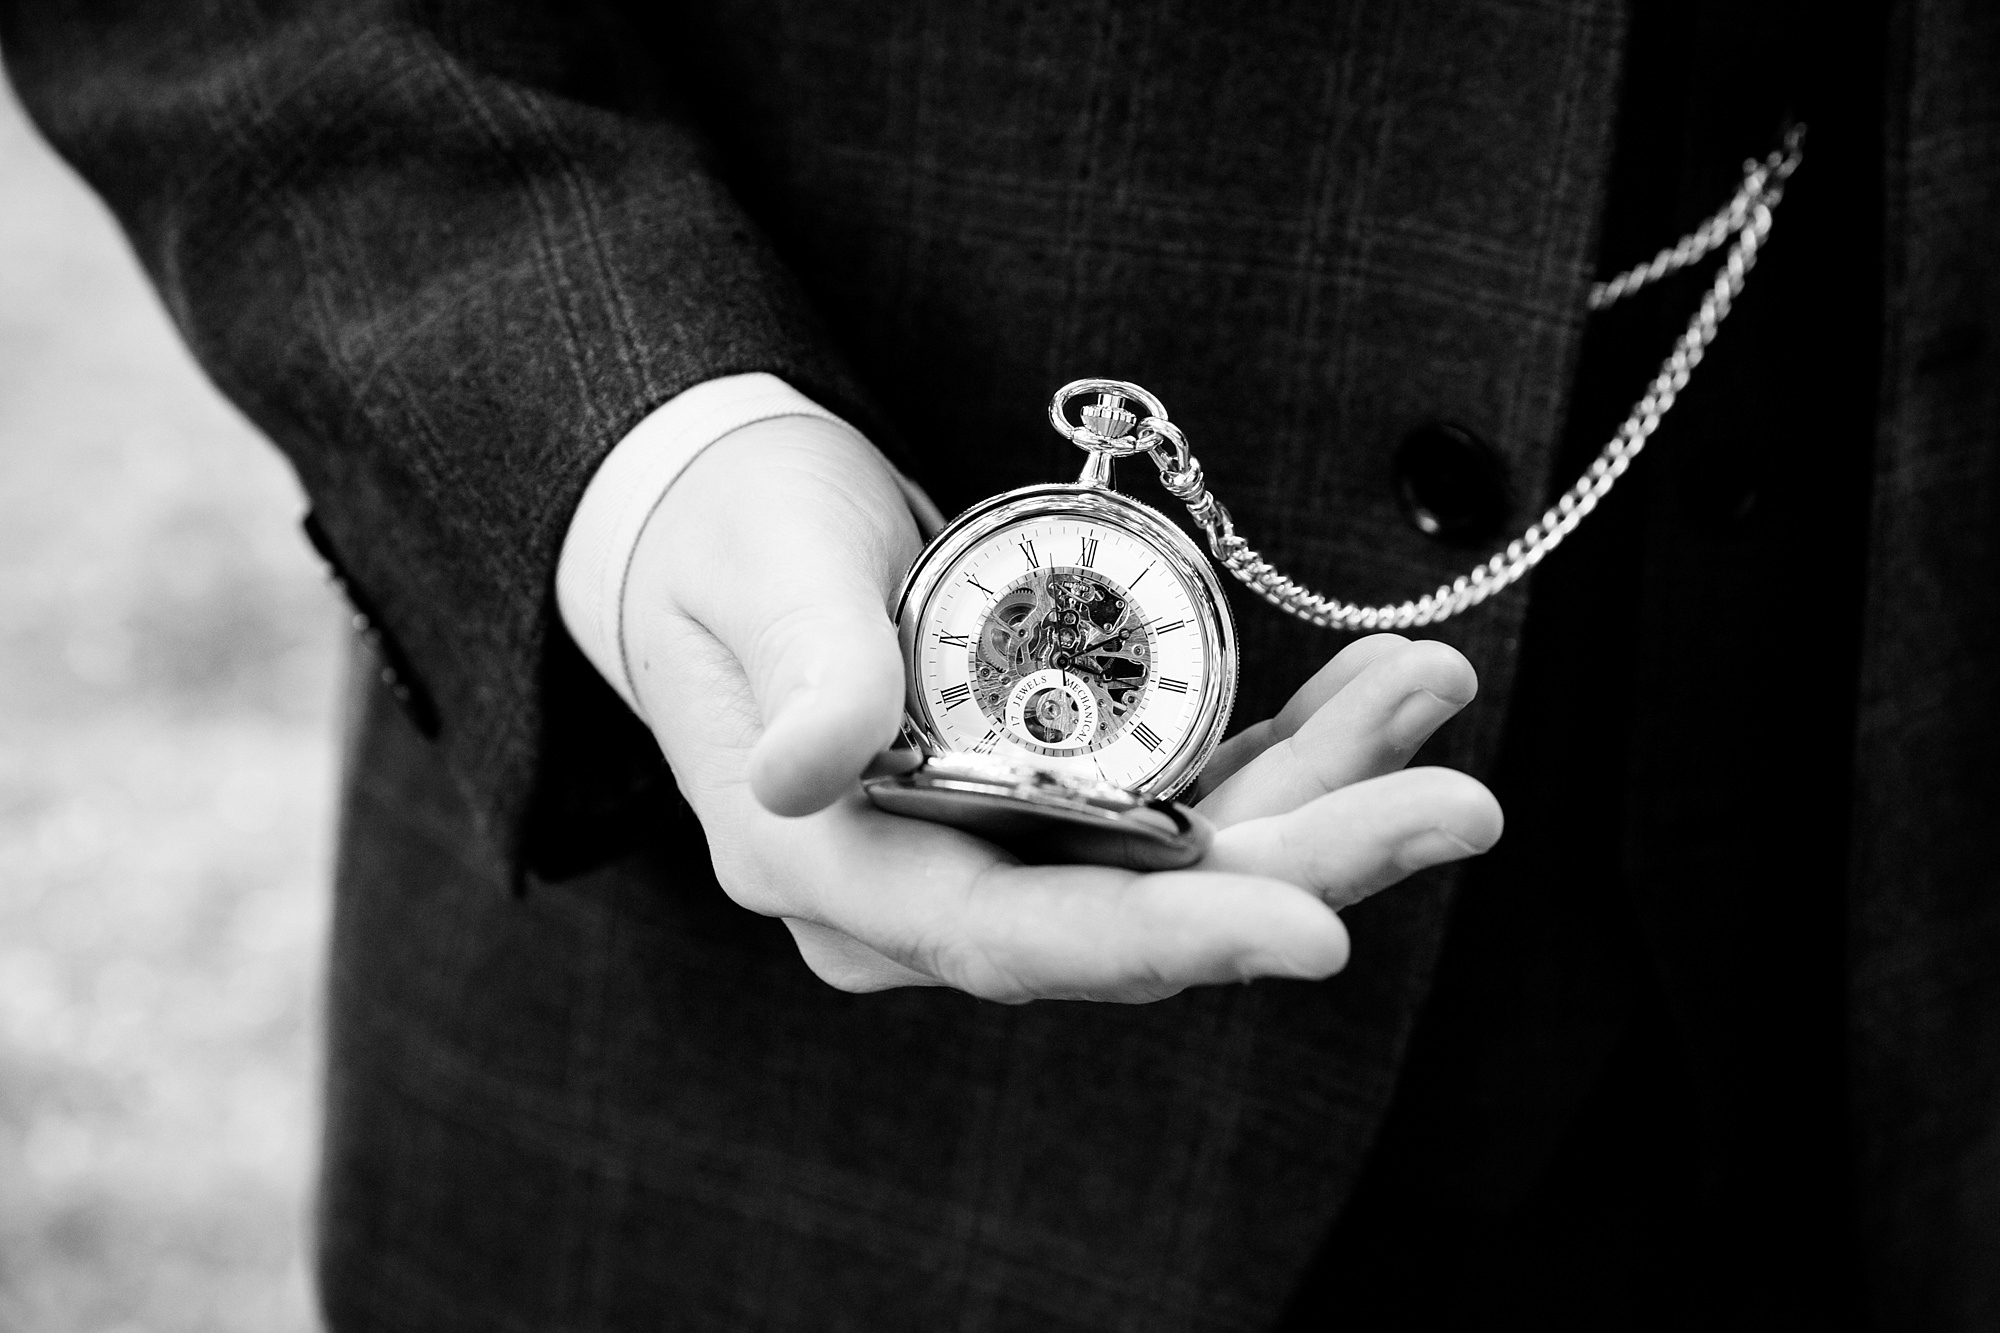 The Grange Ealing wedding close up detail of groom's pocket watch